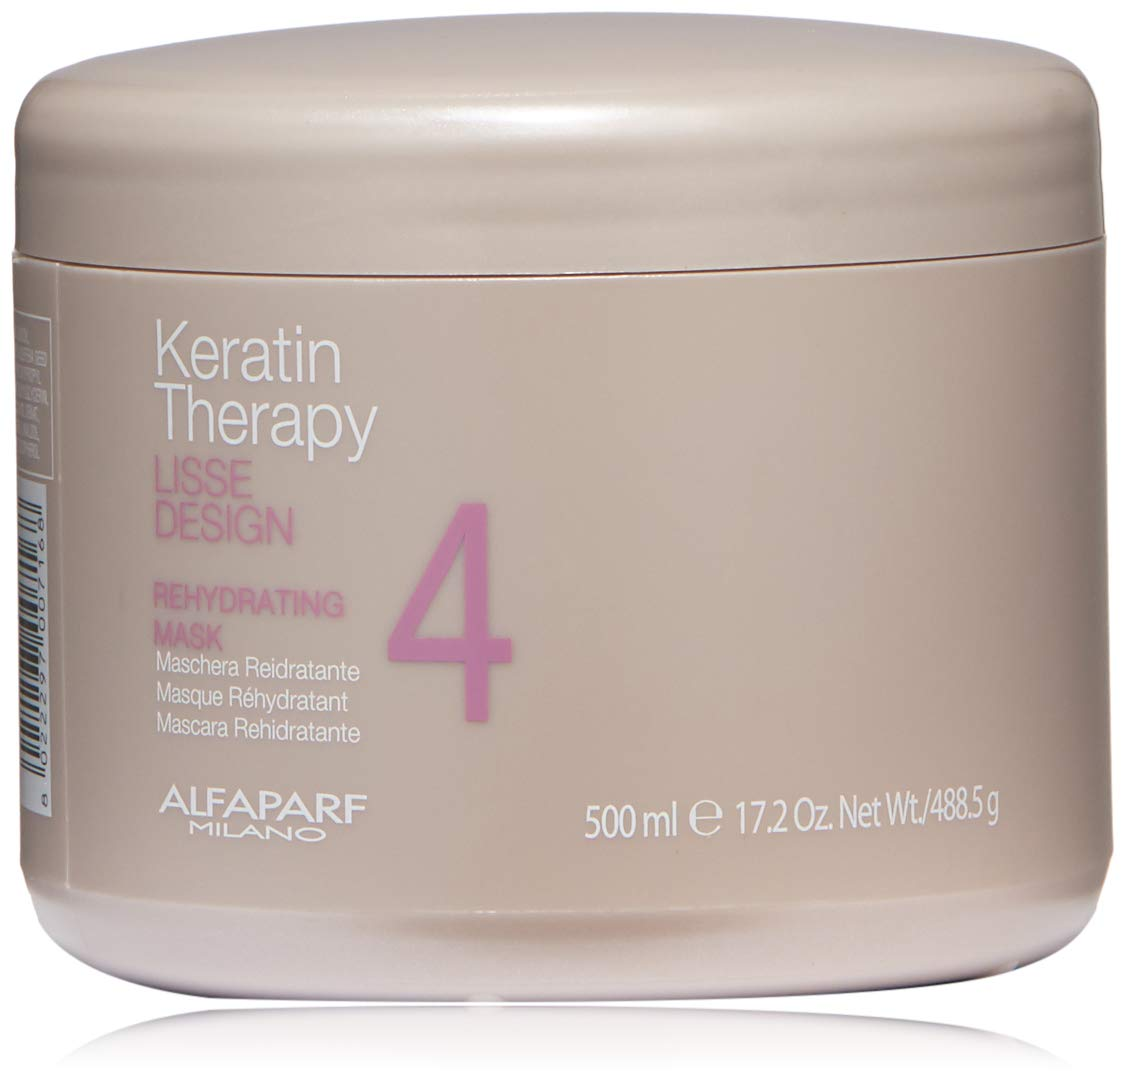 Alfaparf Alfaparf Milano Lisse Desing Keratin Therapy Rehydrating Mask 500Ml - 500 ml